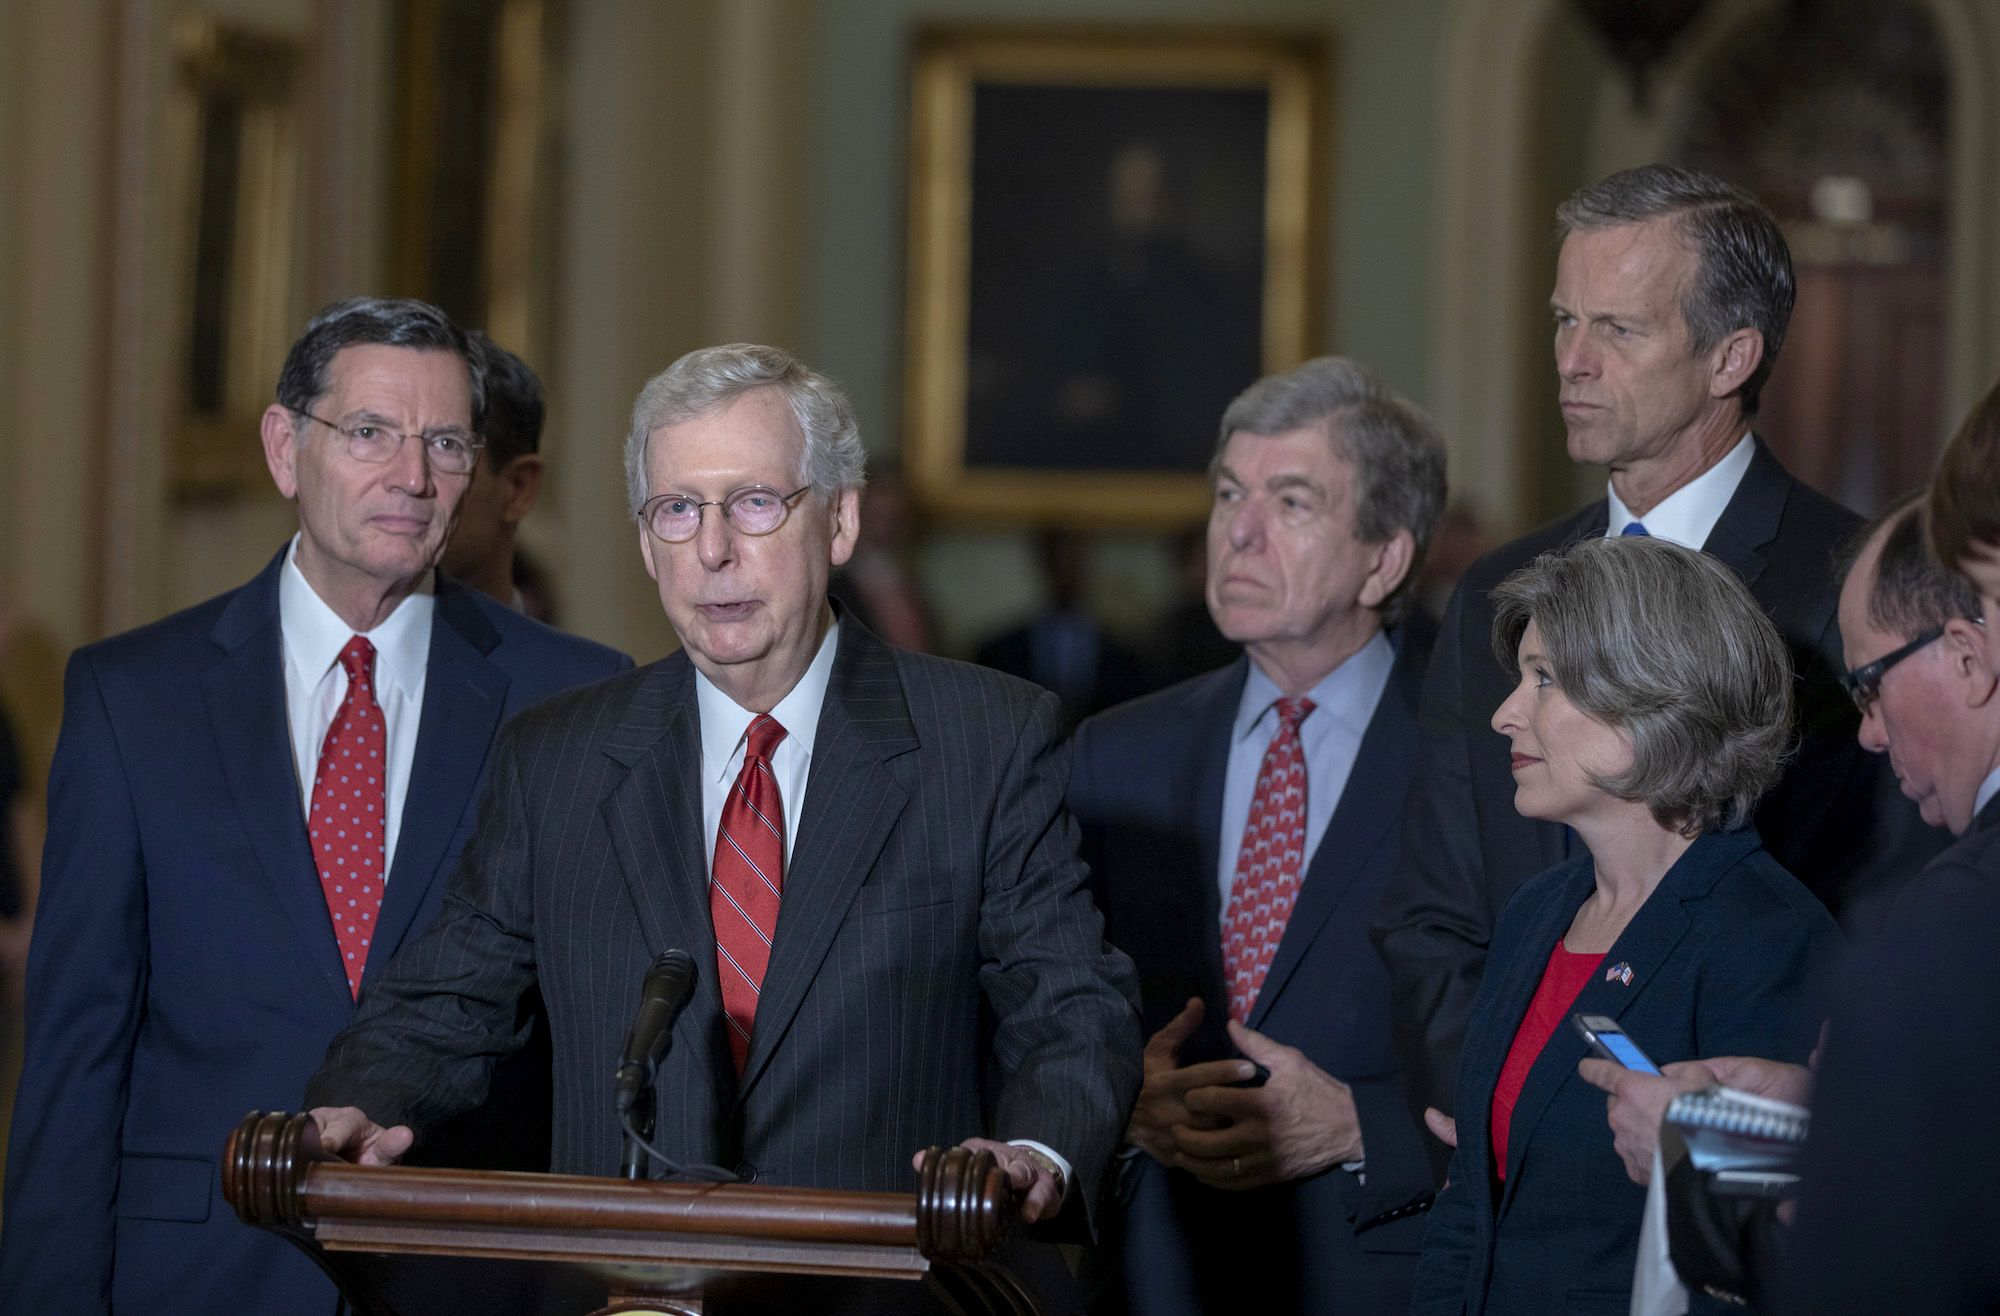 Republicans Don't Want to Know About Russian Ratf*cking and They Don't Care About Stopping It